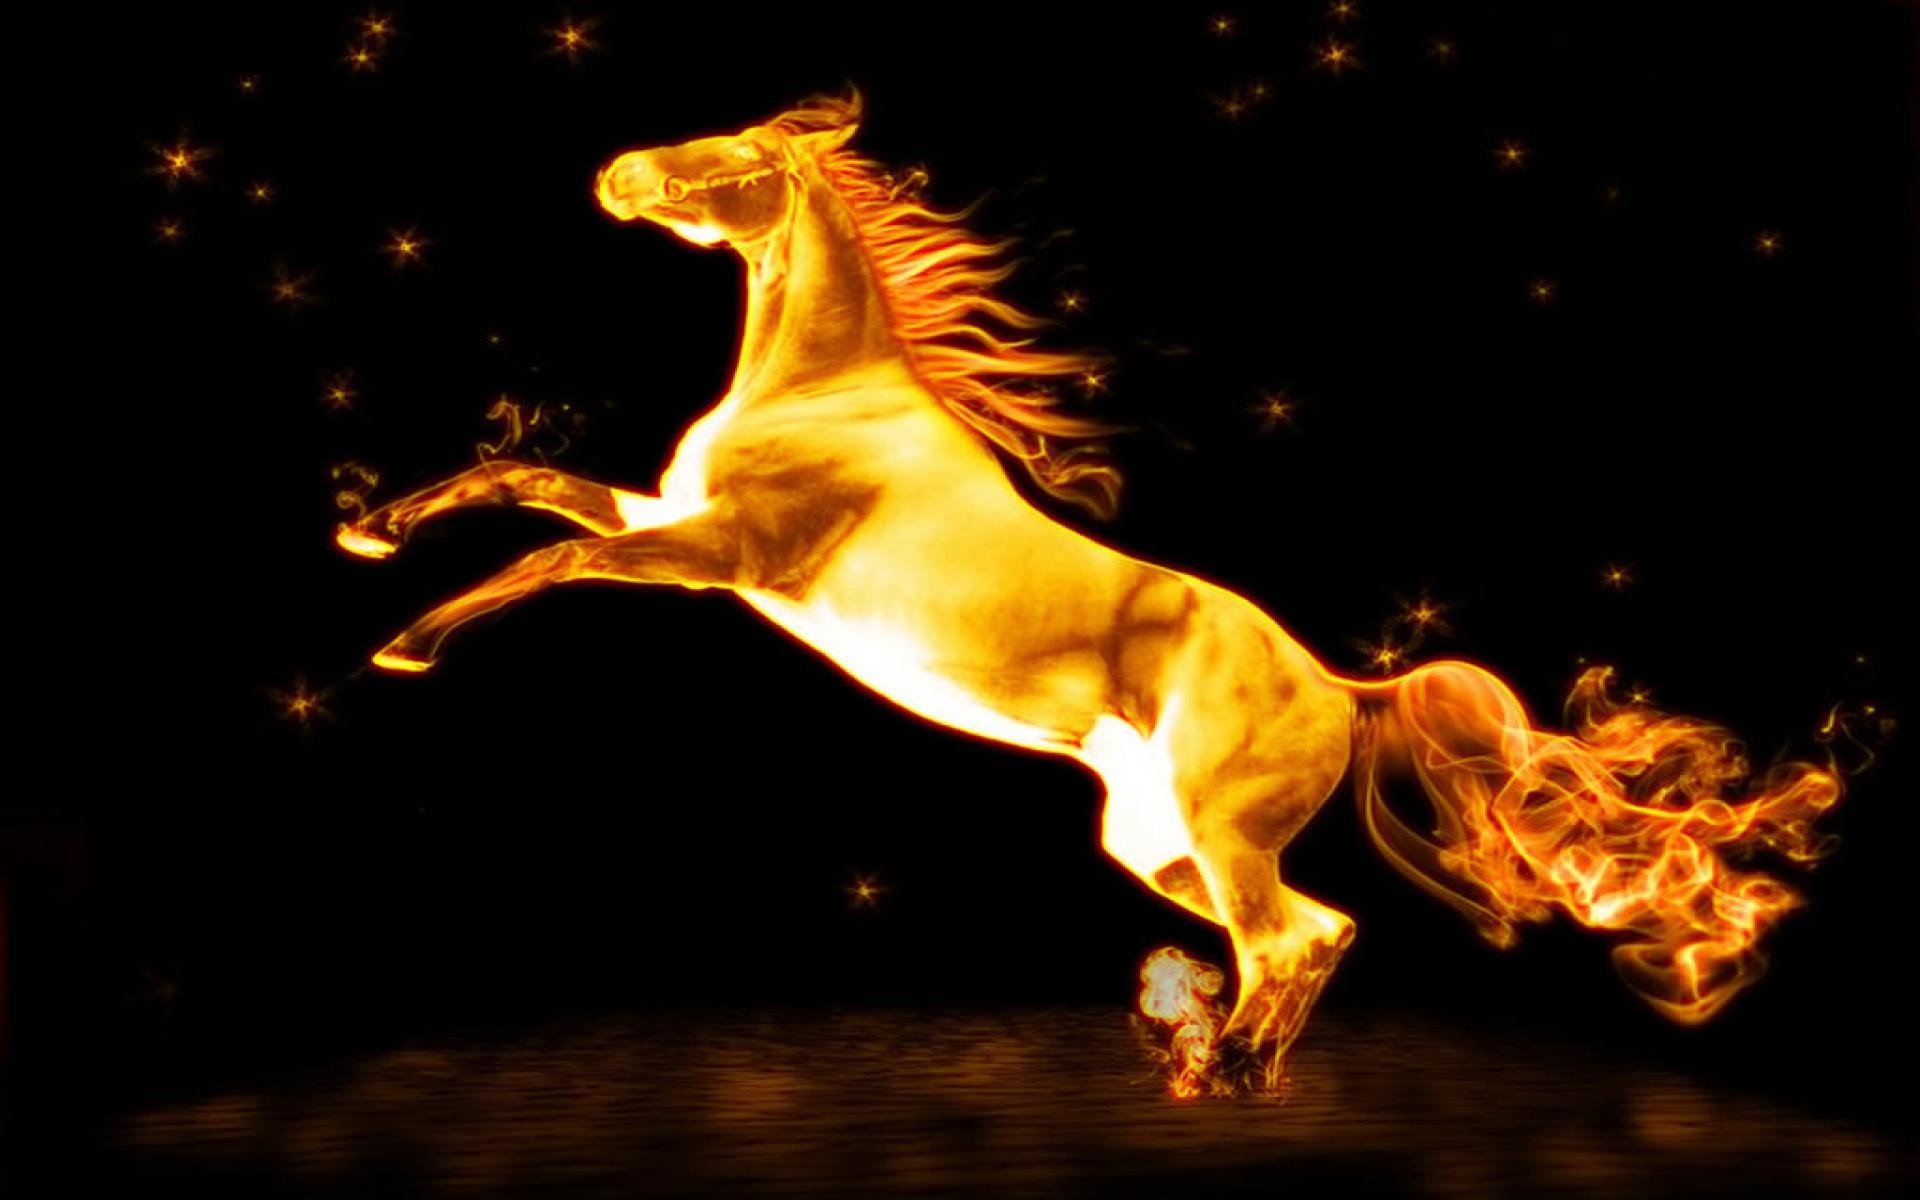 Fire Horse Wallpaper Hd 61 Images